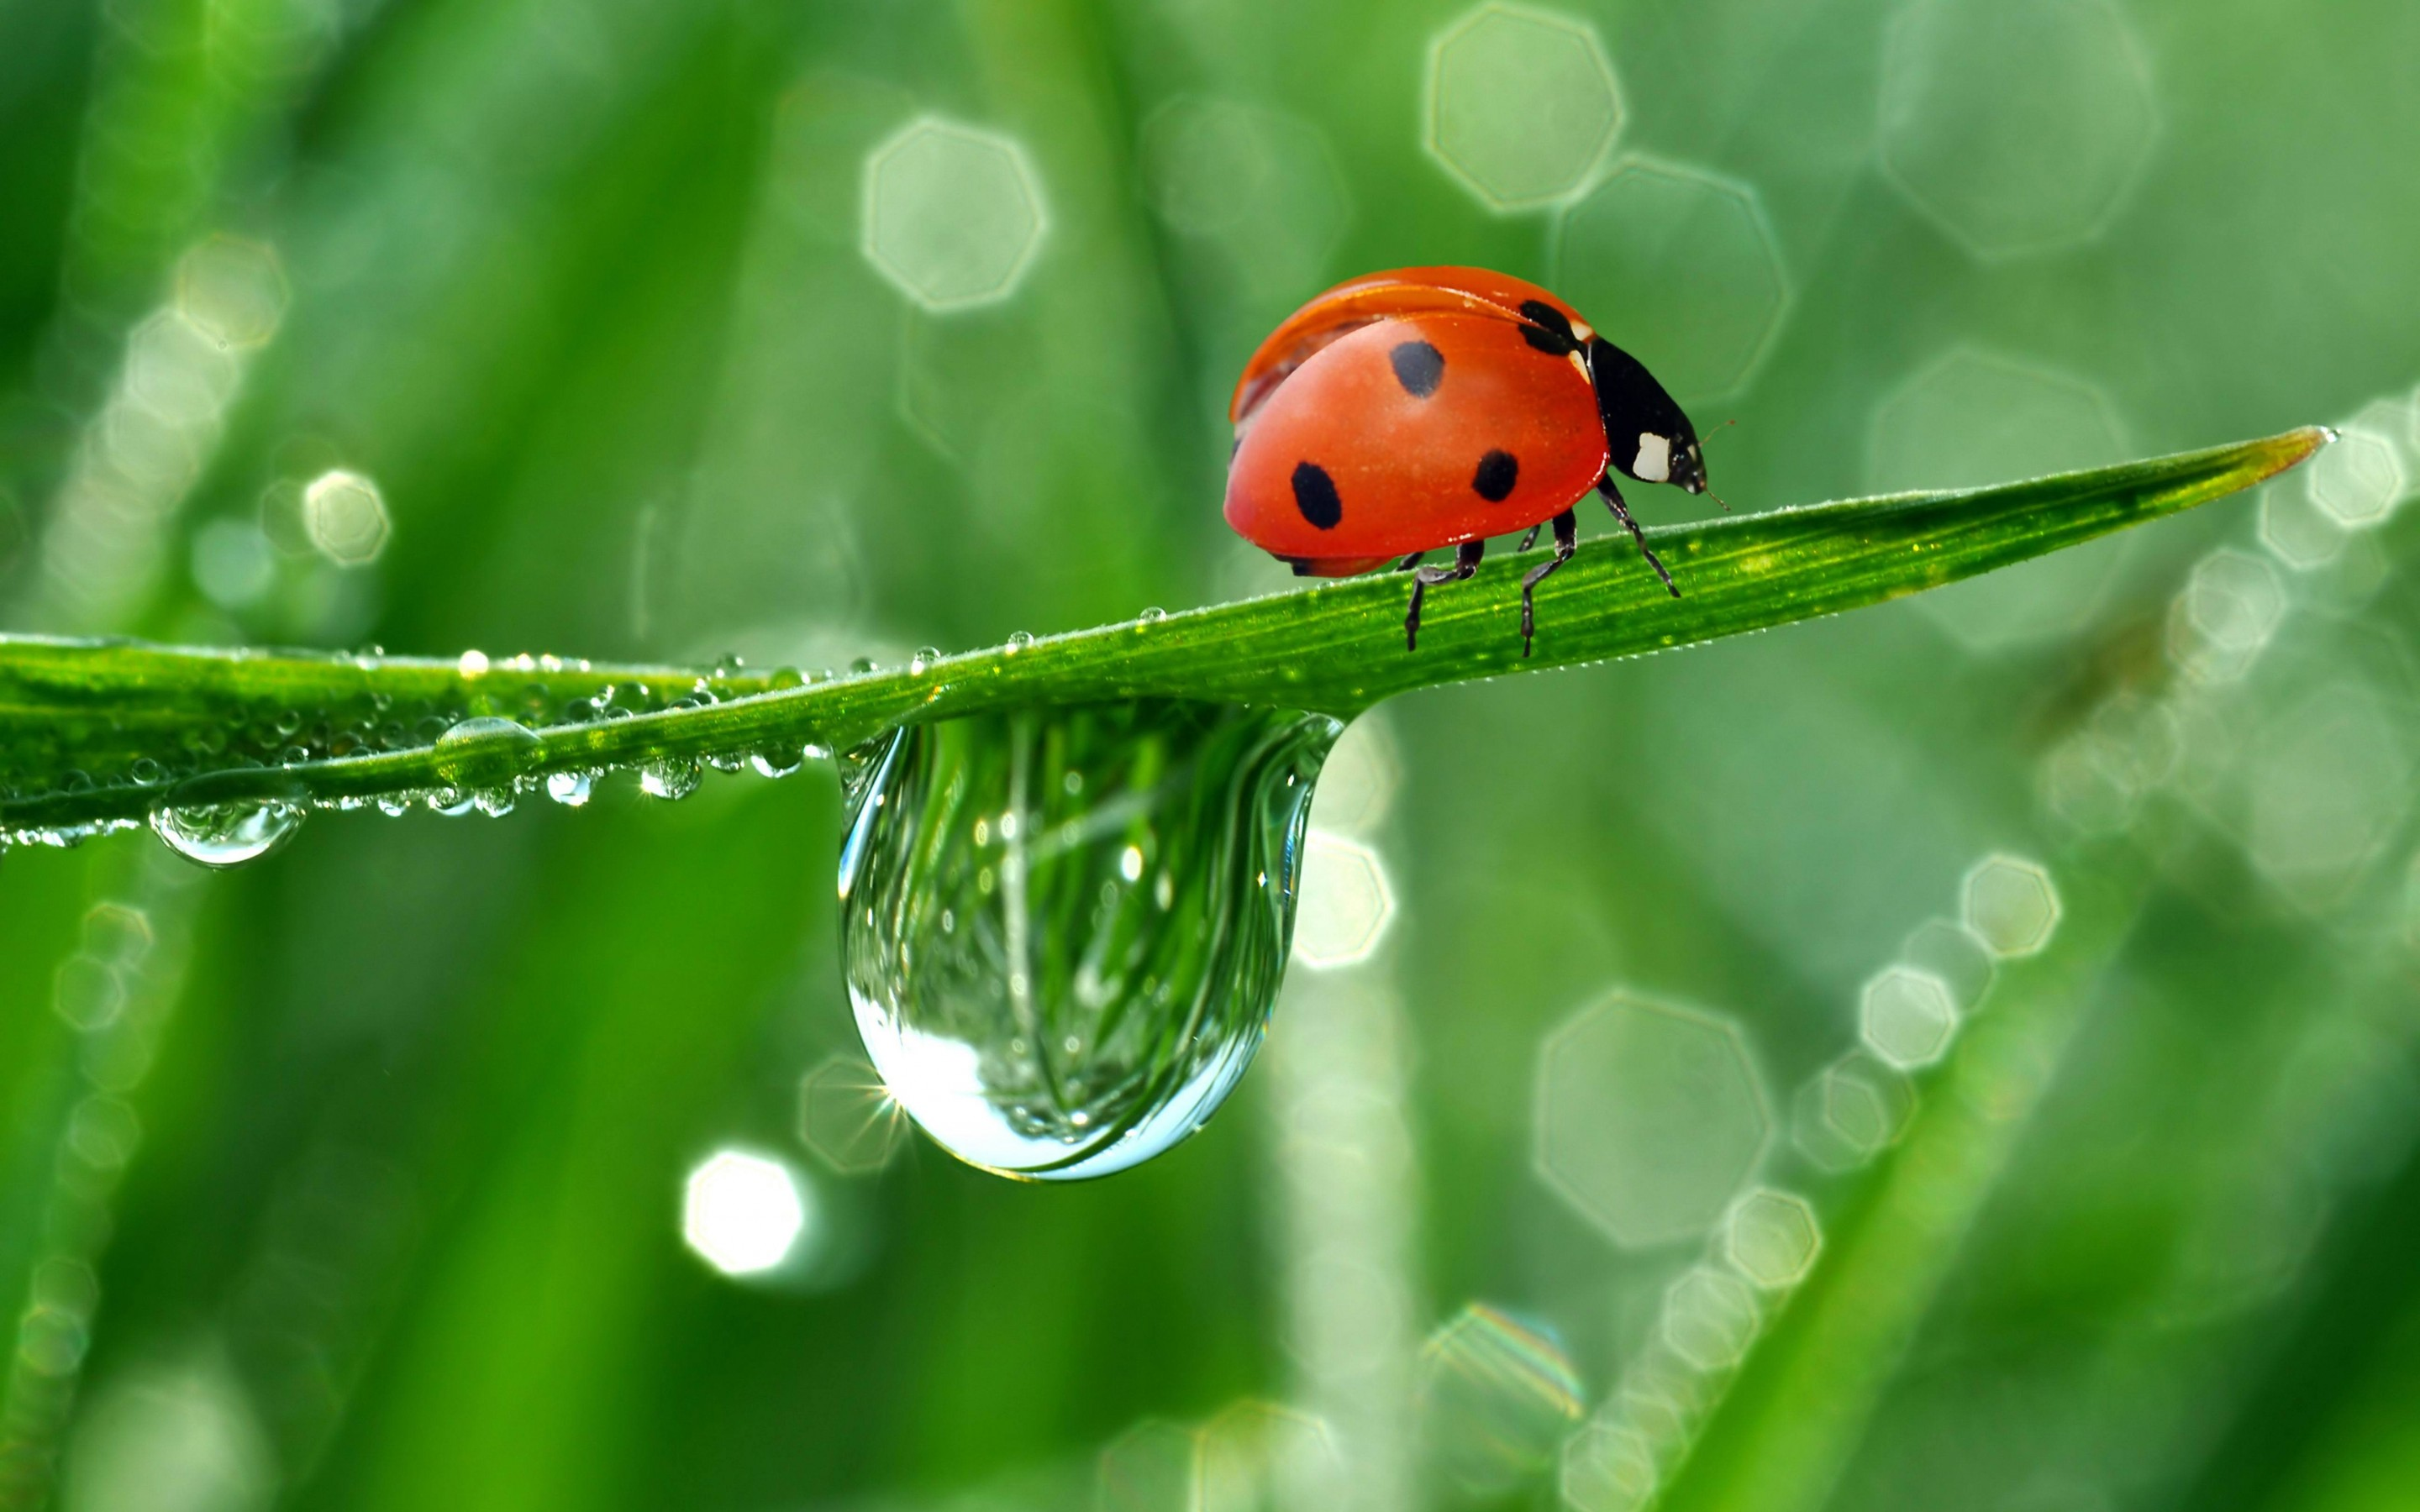 351 ladybug hd wallpapers | background images - wallpaper abyss